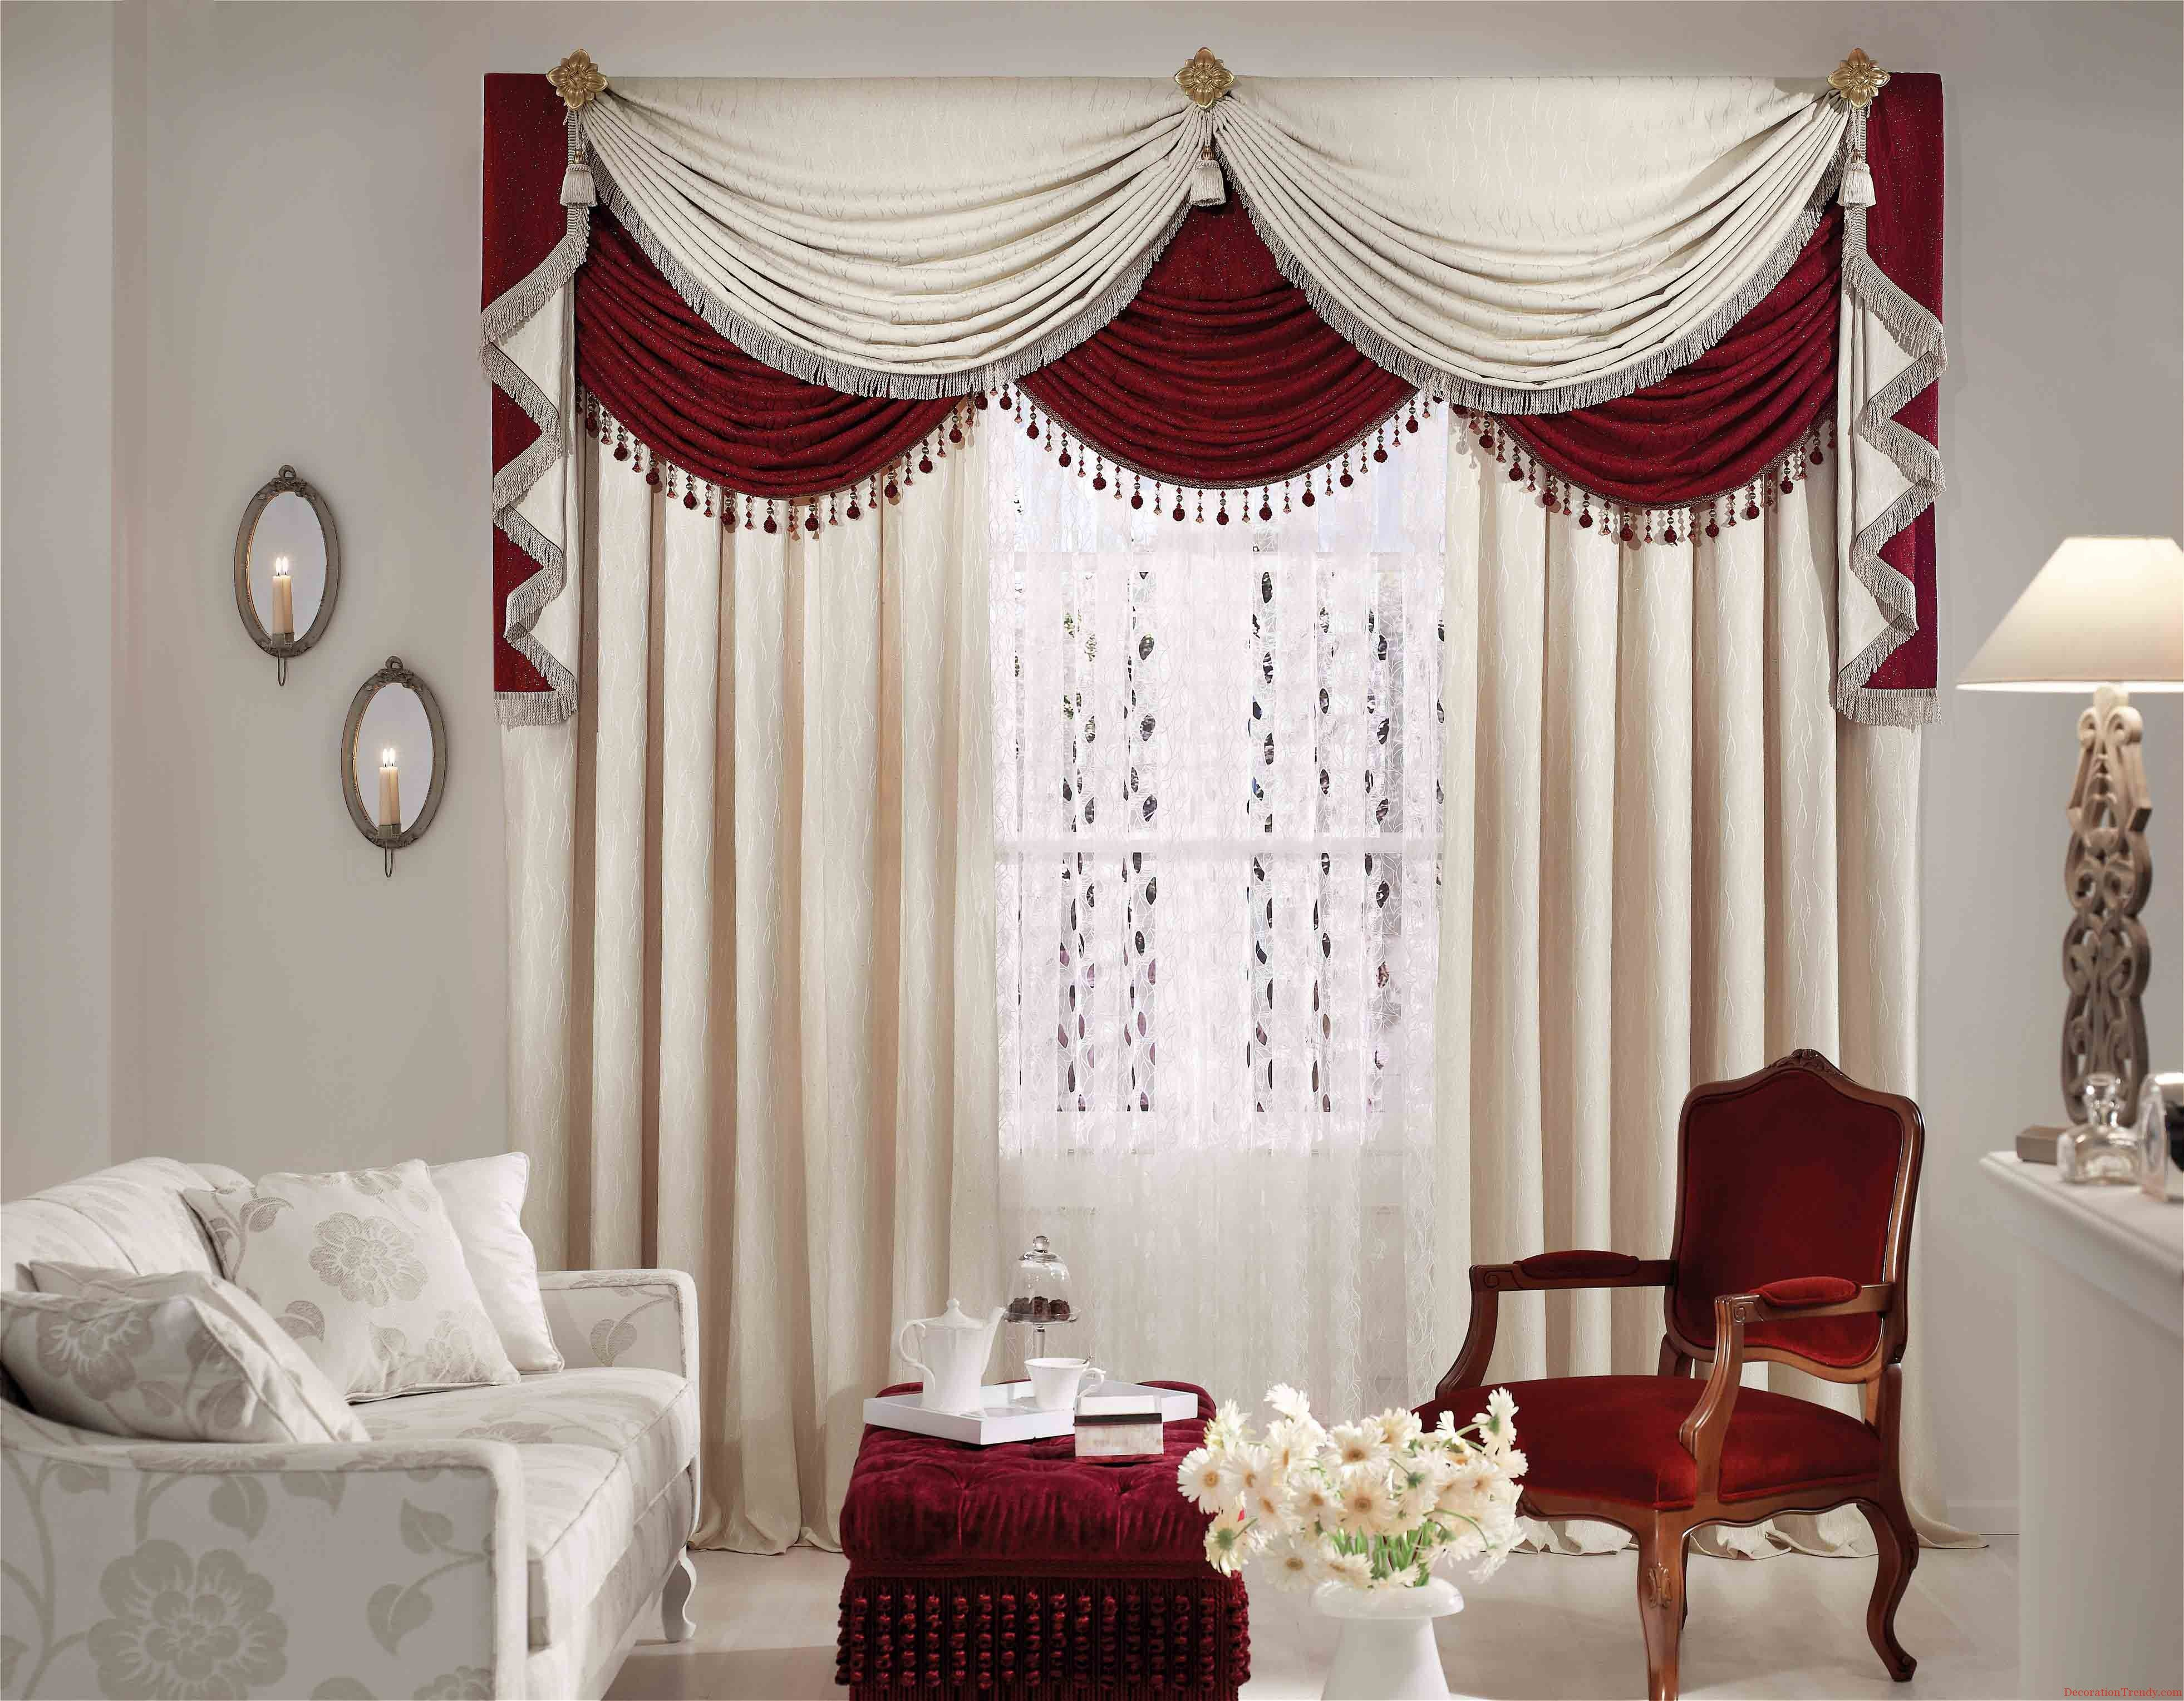 window curtain design curtain designs - google search VHUOWLA